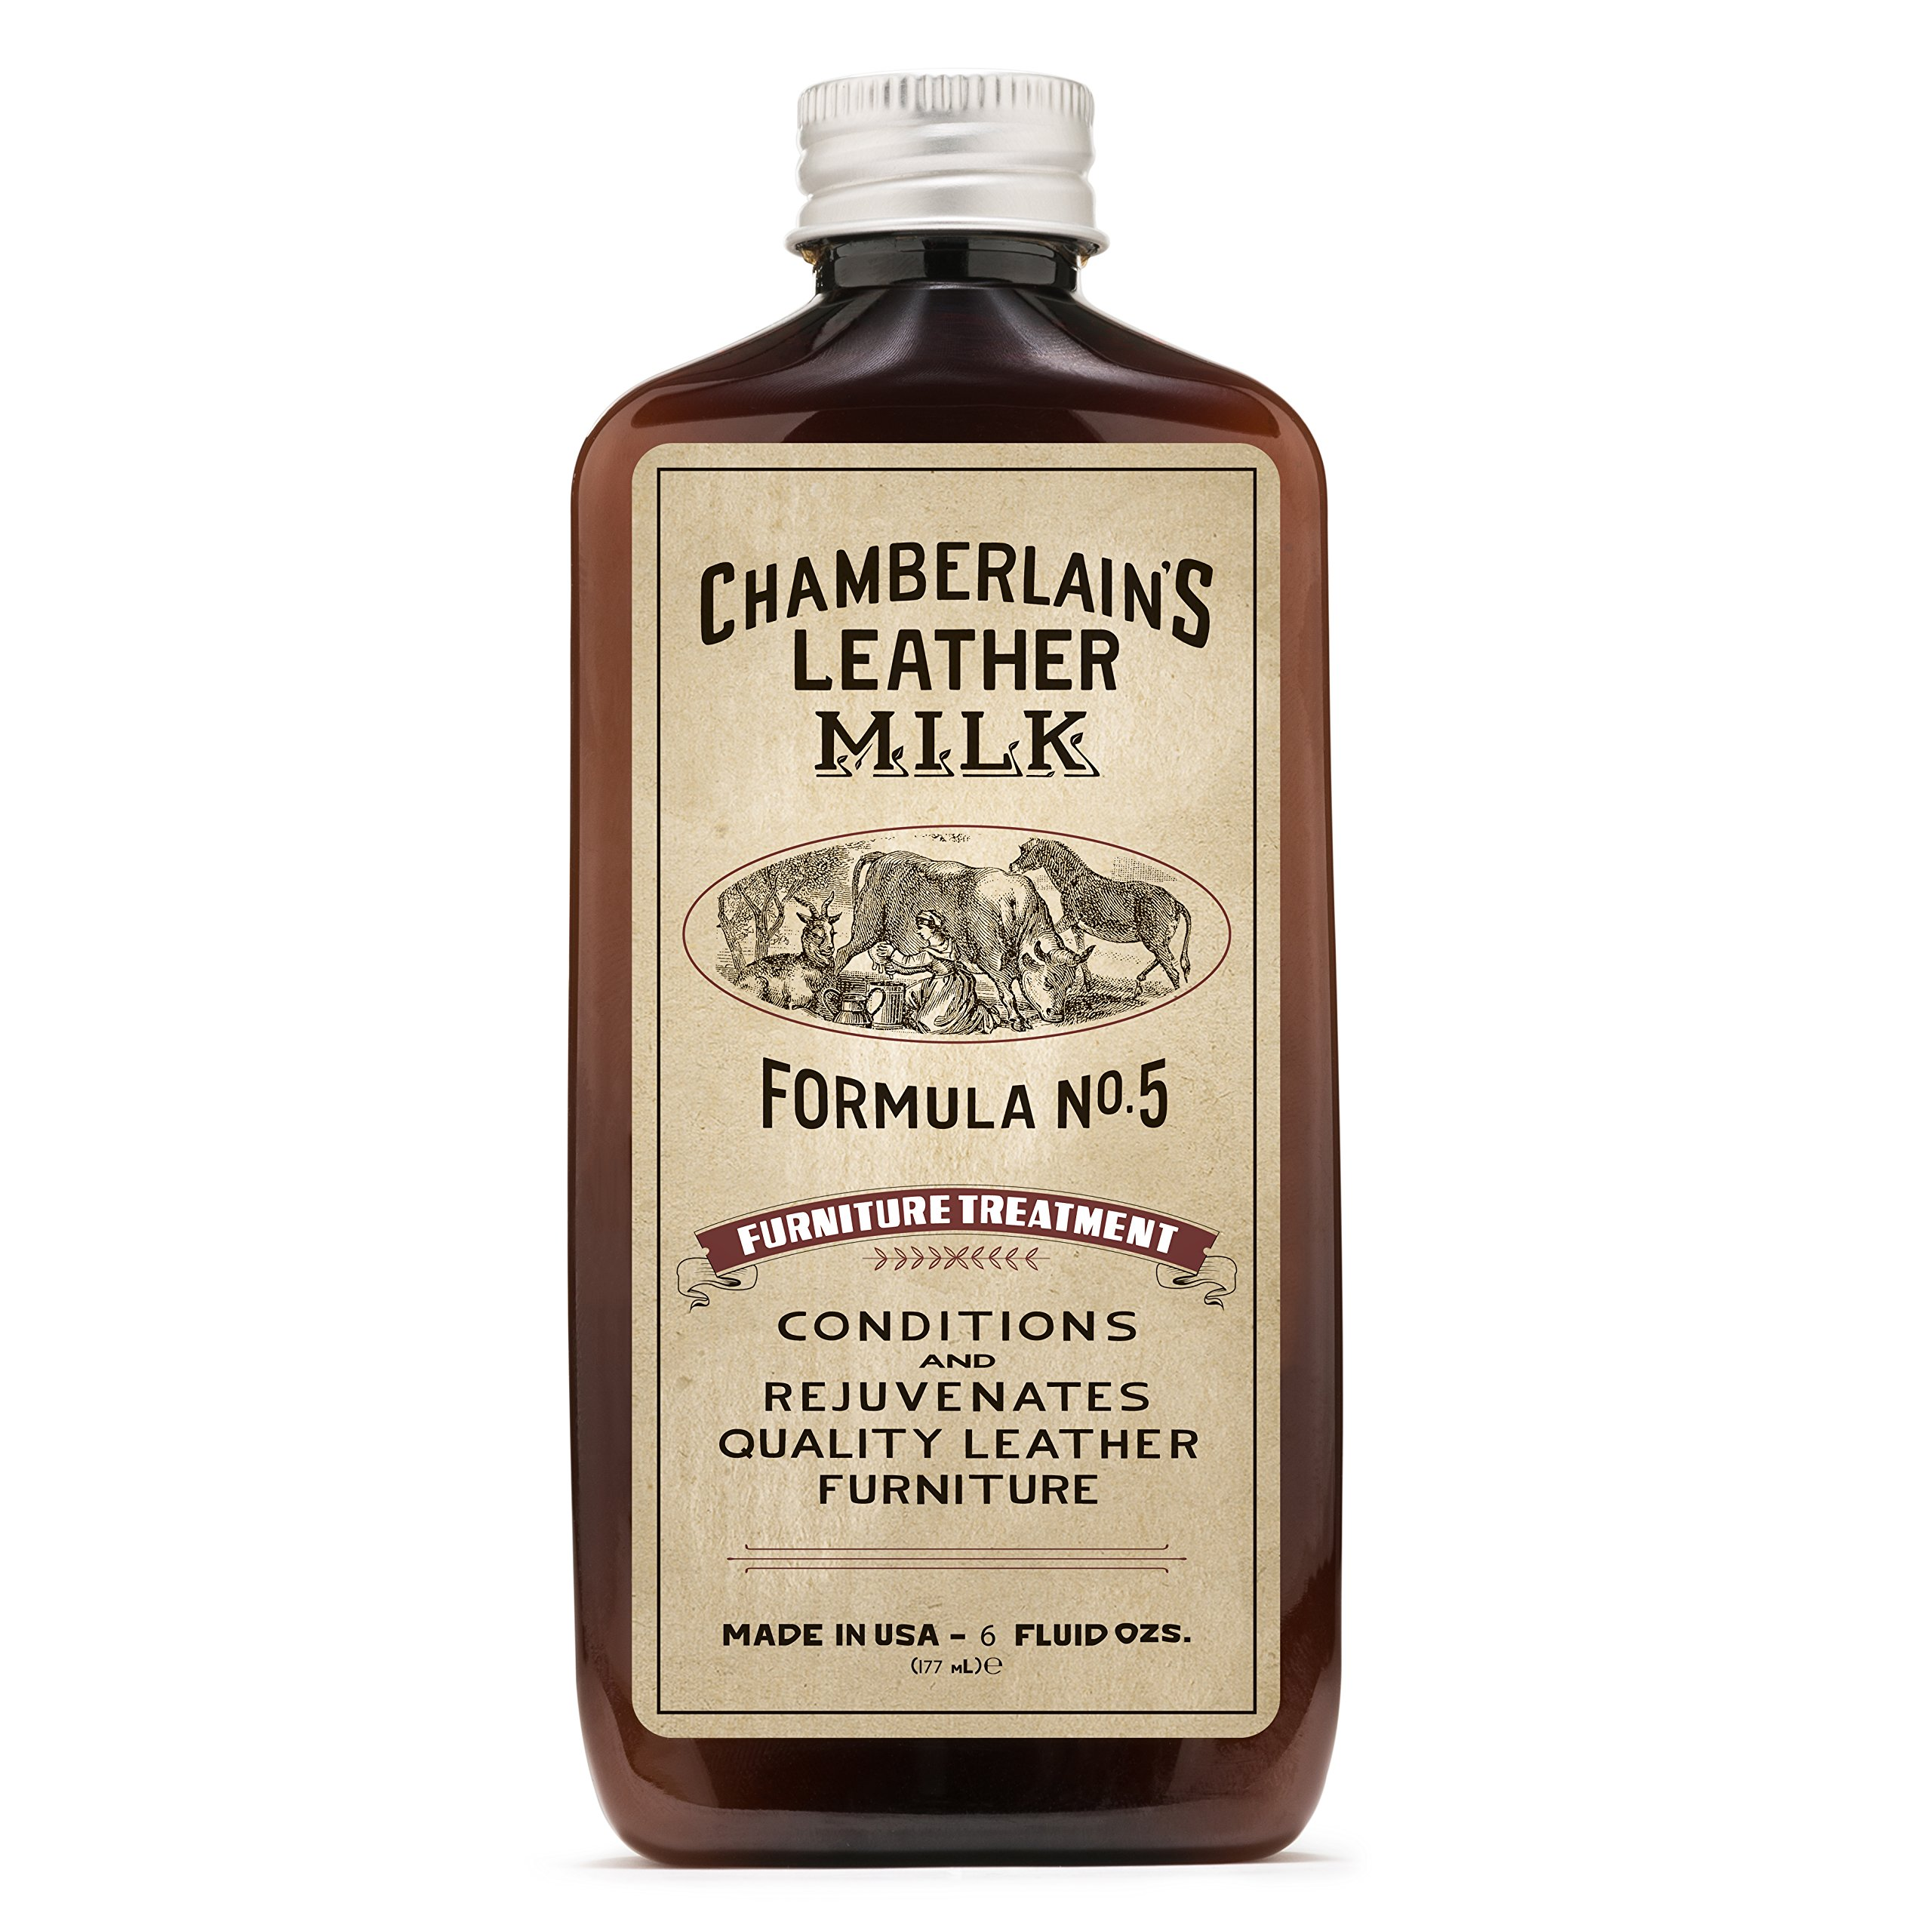 Leather Milk Leather Furniture Conditioner and Cleaner - Furniture Treatment No. 5 - for All Natural, Non-Toxic Leather Care. Made in The USA. 2 Sizes. Includes Premium Applicator Pad! by Chamberlain's Leather Milk